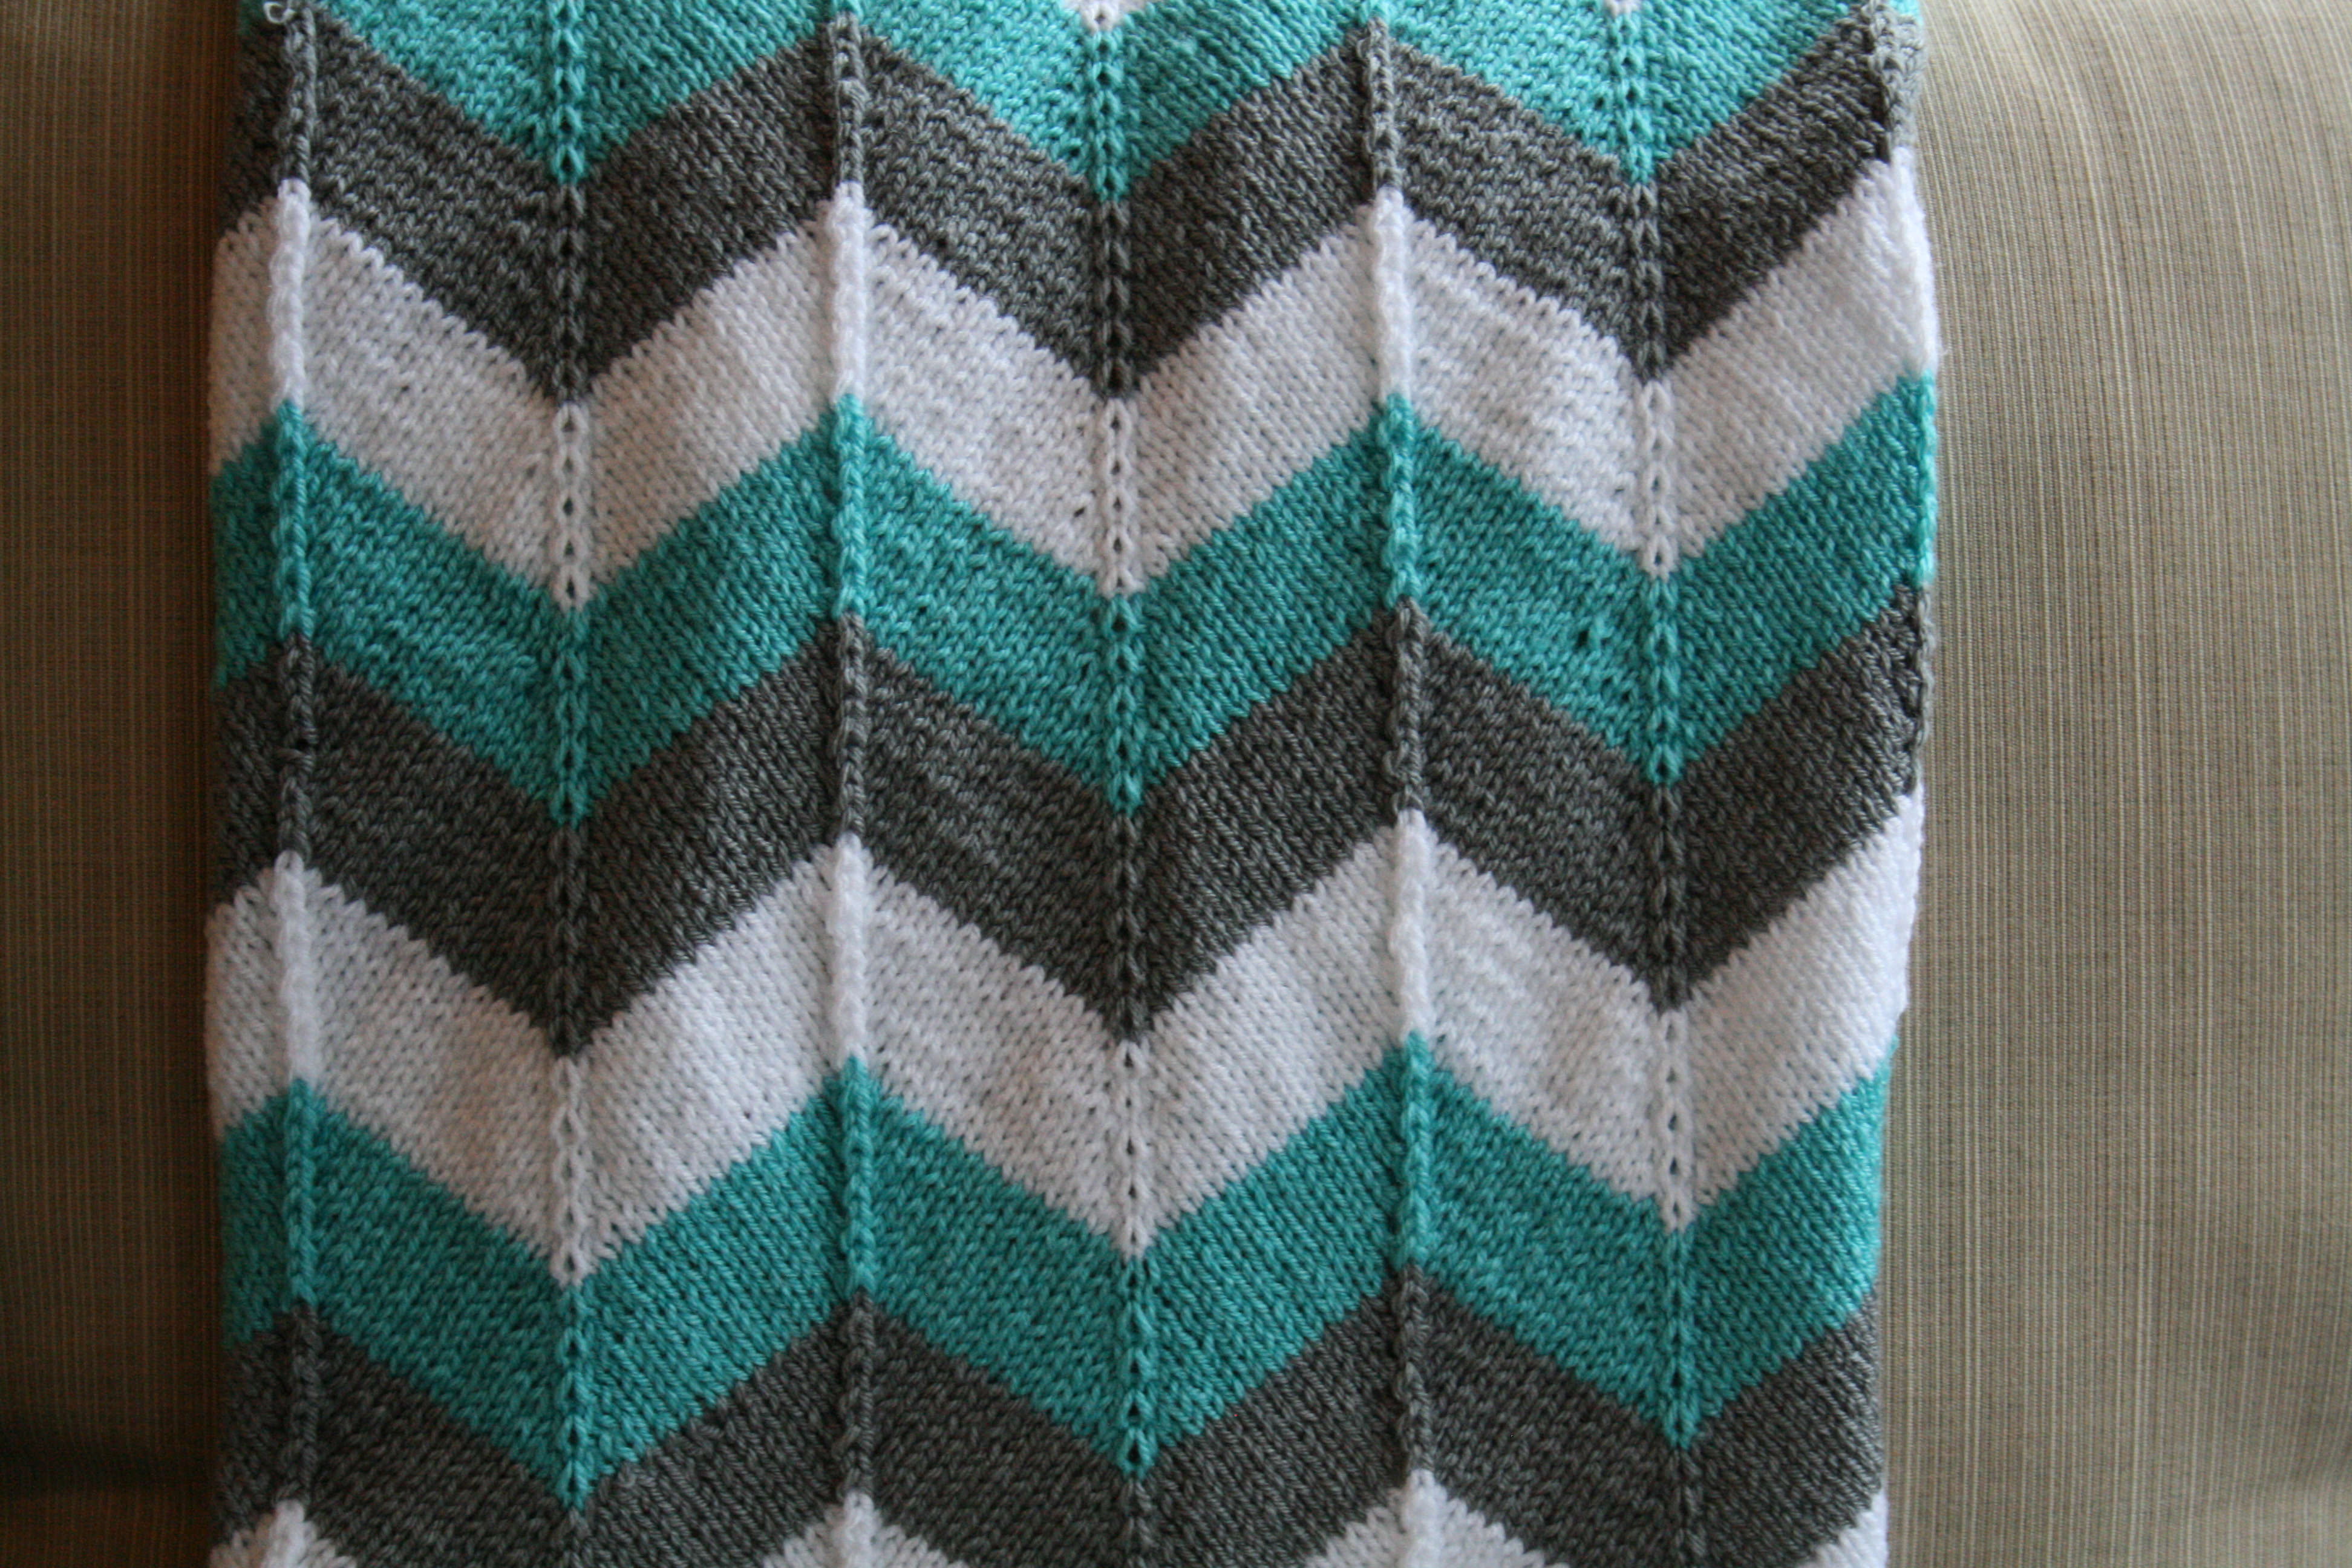 Chevron knitted baby blanket pattern image collections knitting chevron flame knitting scarf patterns patterns kid how dt1010fo baby blanket dt1010fo